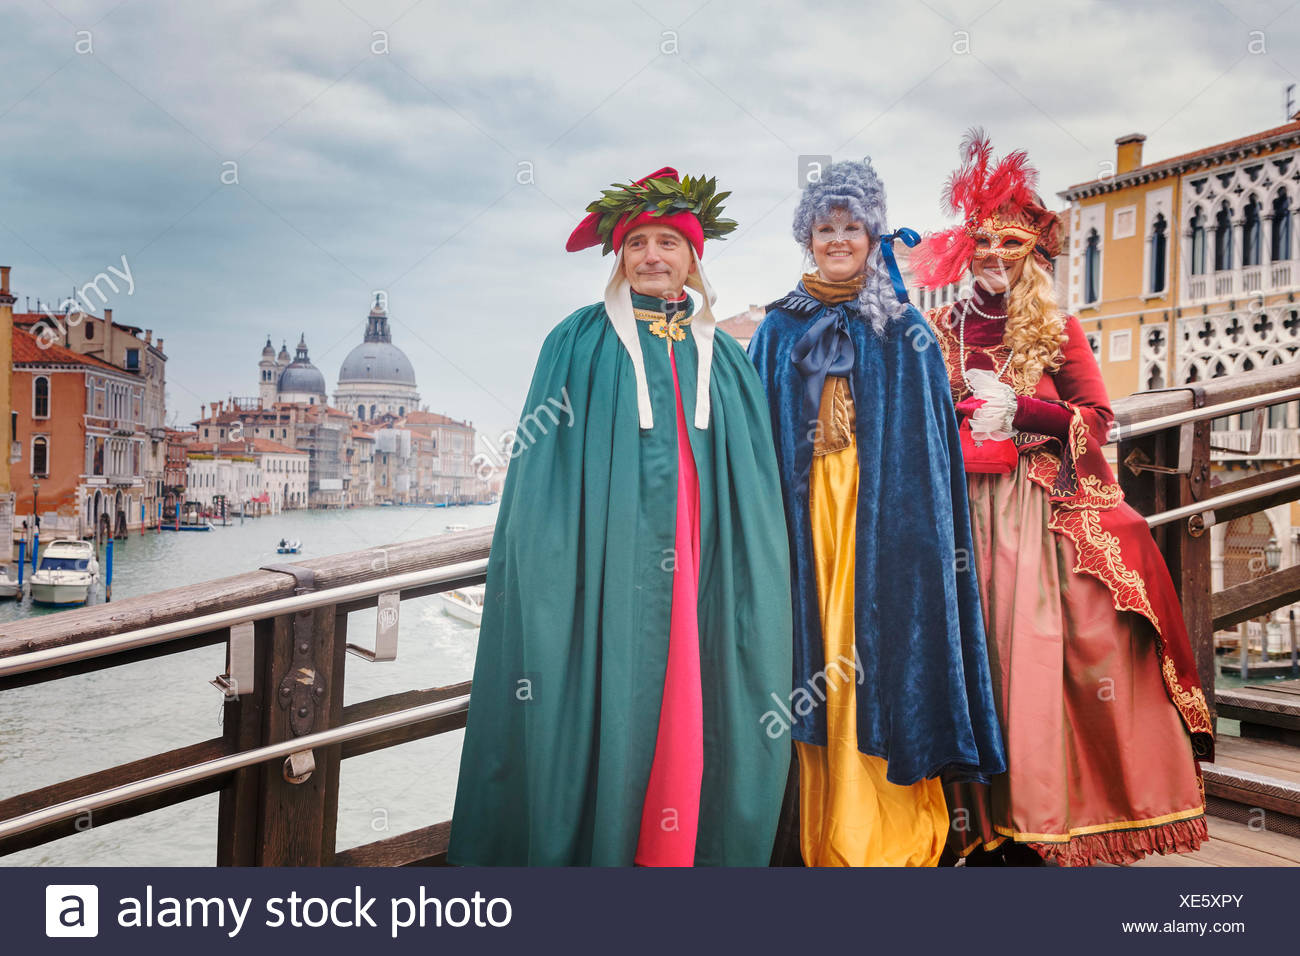 Europe, Italy, Veneto, Venice. Group of people in carnival fancy dress on the Accademia bridge Stock Photo